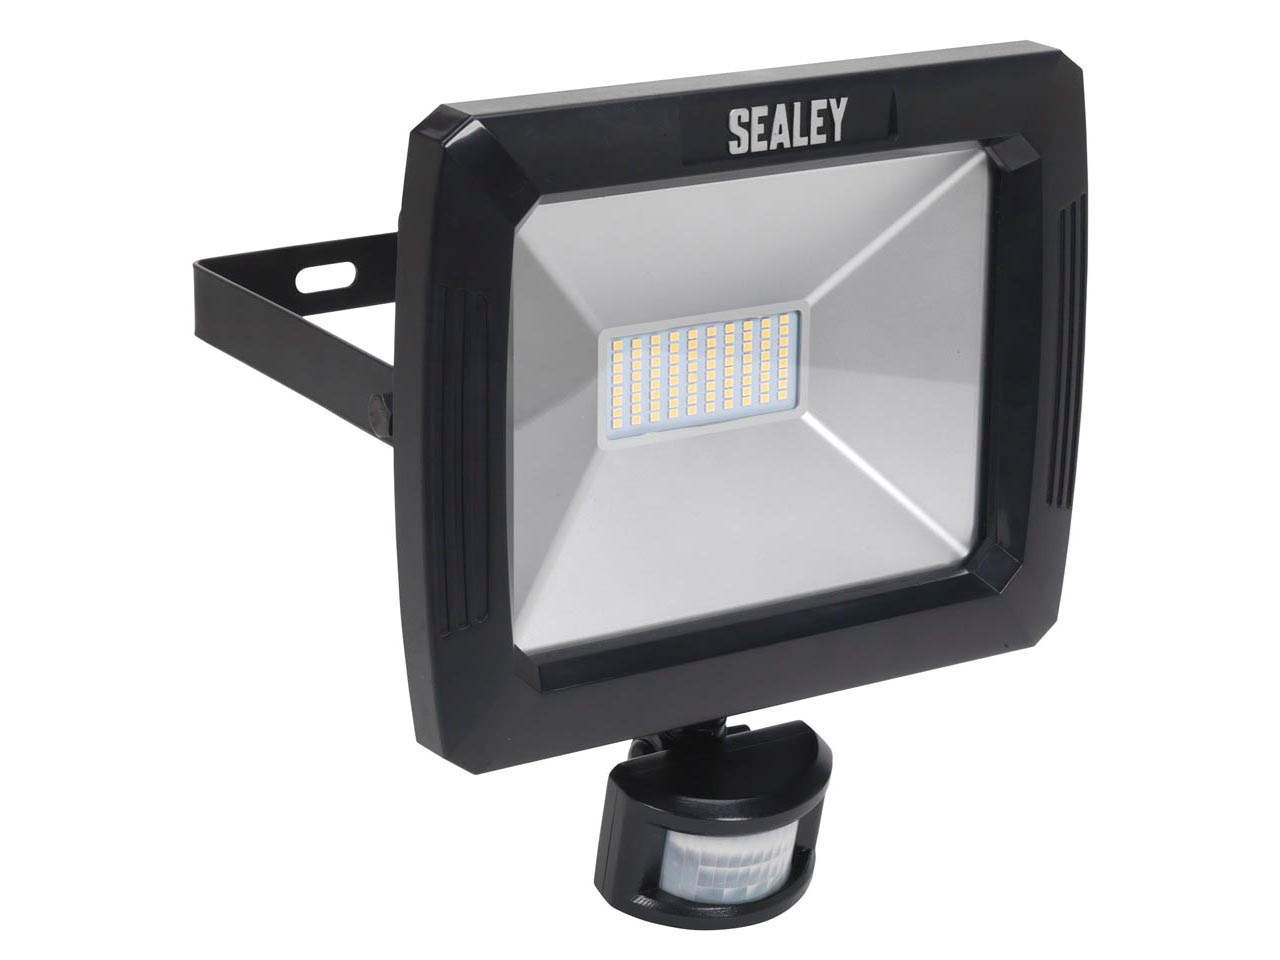 Sealey led089 floodlight with wall bracket pir sensor 70w smd led 230v aloadofball Image collections